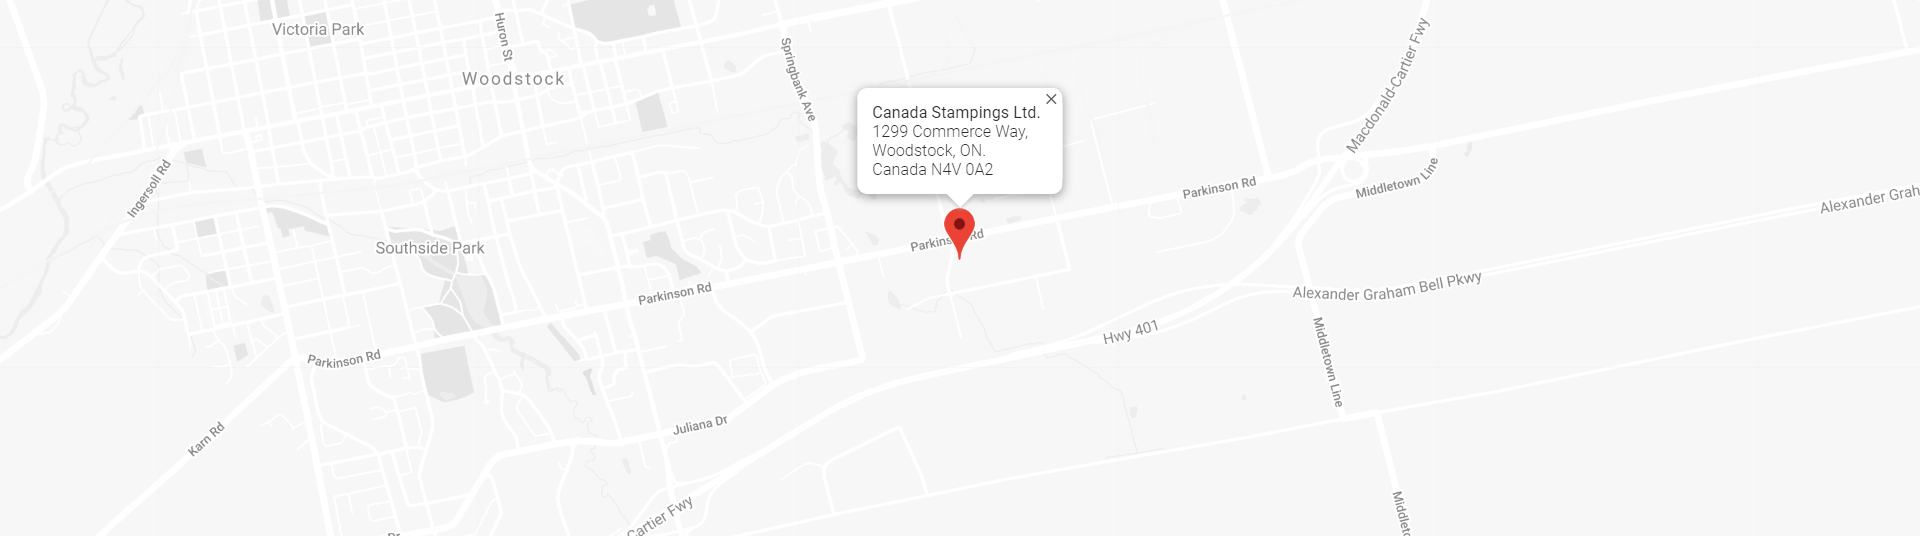 Canada Stampings Homepage Map